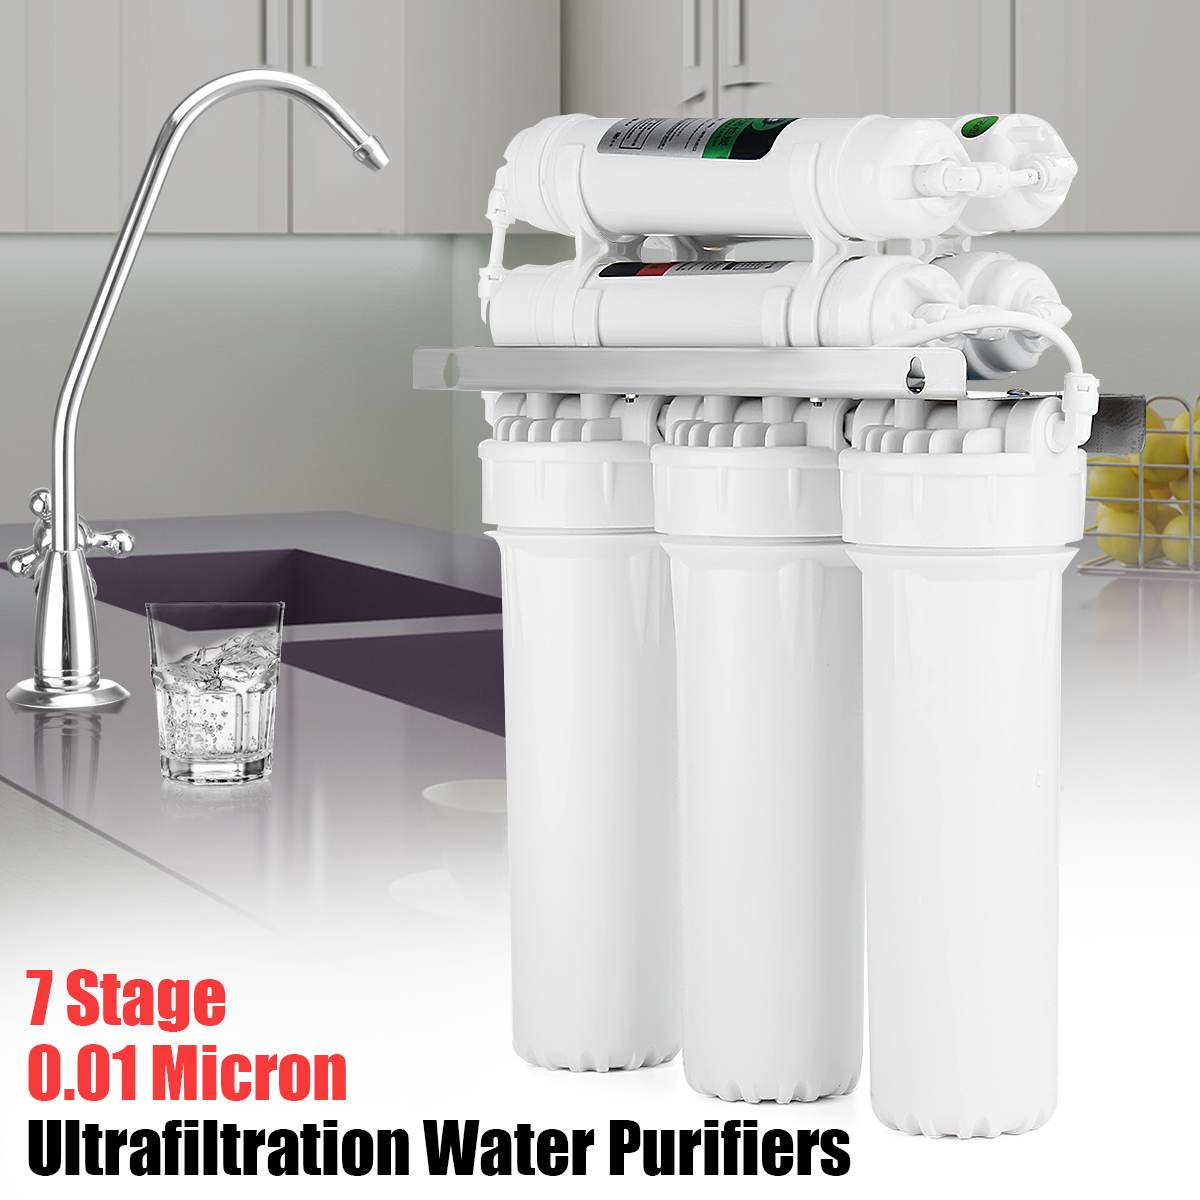 7 Stage UF Home Kitchen Purifier Water Filters System With Faucet Valve Water Pipe Drinking Ultrafiltration System Water Filter7 Stage UF Home Kitchen Purifier Water Filters System With Faucet Valve Water Pipe Drinking Ultrafiltration System Water Filter